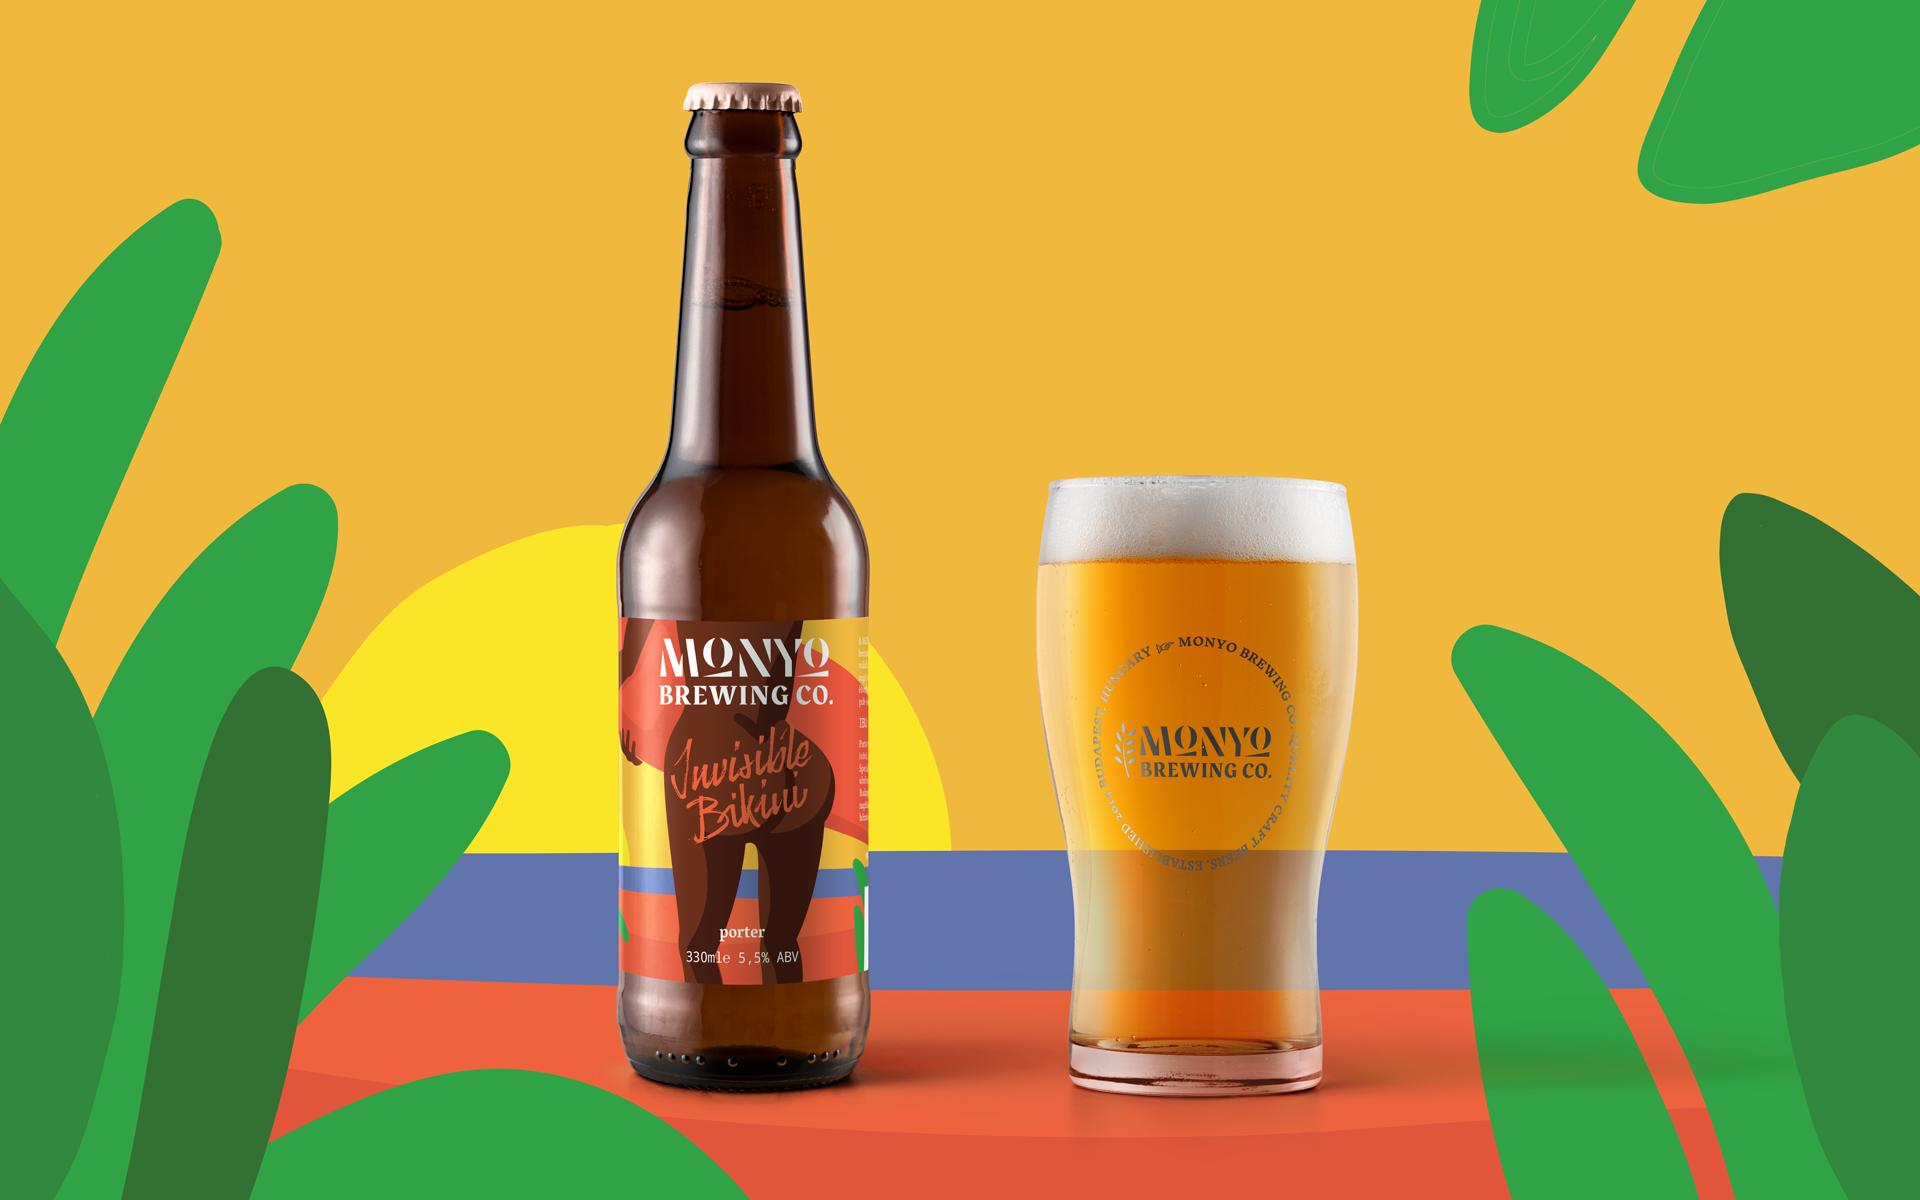 MONYO craft beer packaging \ Invisible Bikini